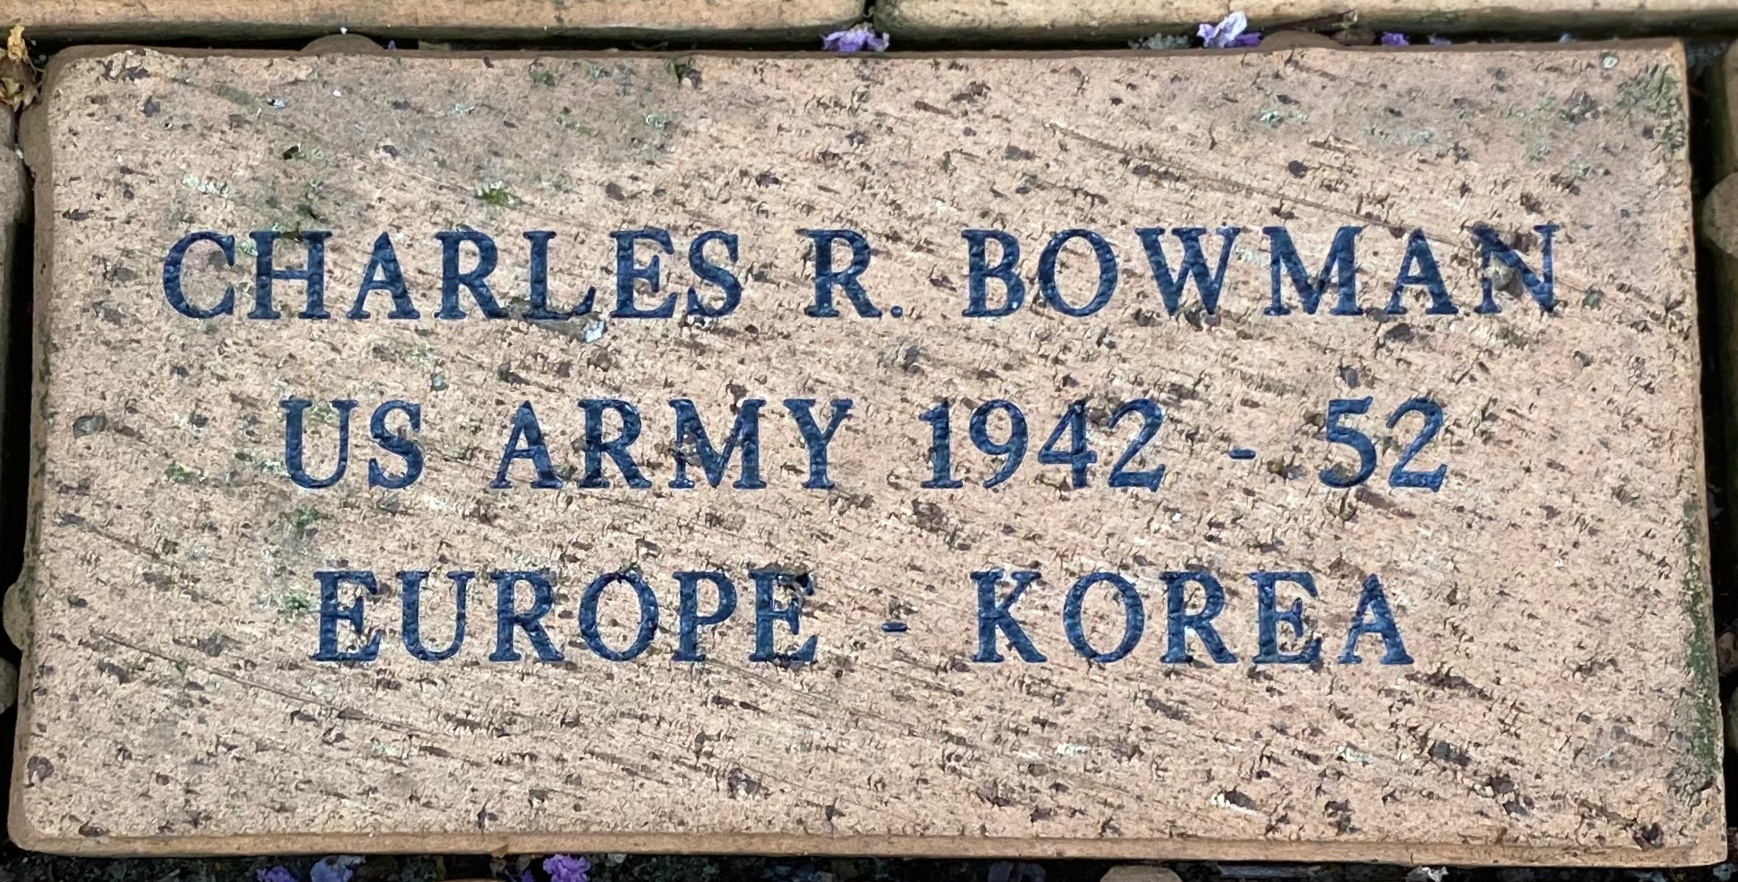 CHARLES R. BOWMAN US ARMY 1942 – 52 EUROPE – KOREA